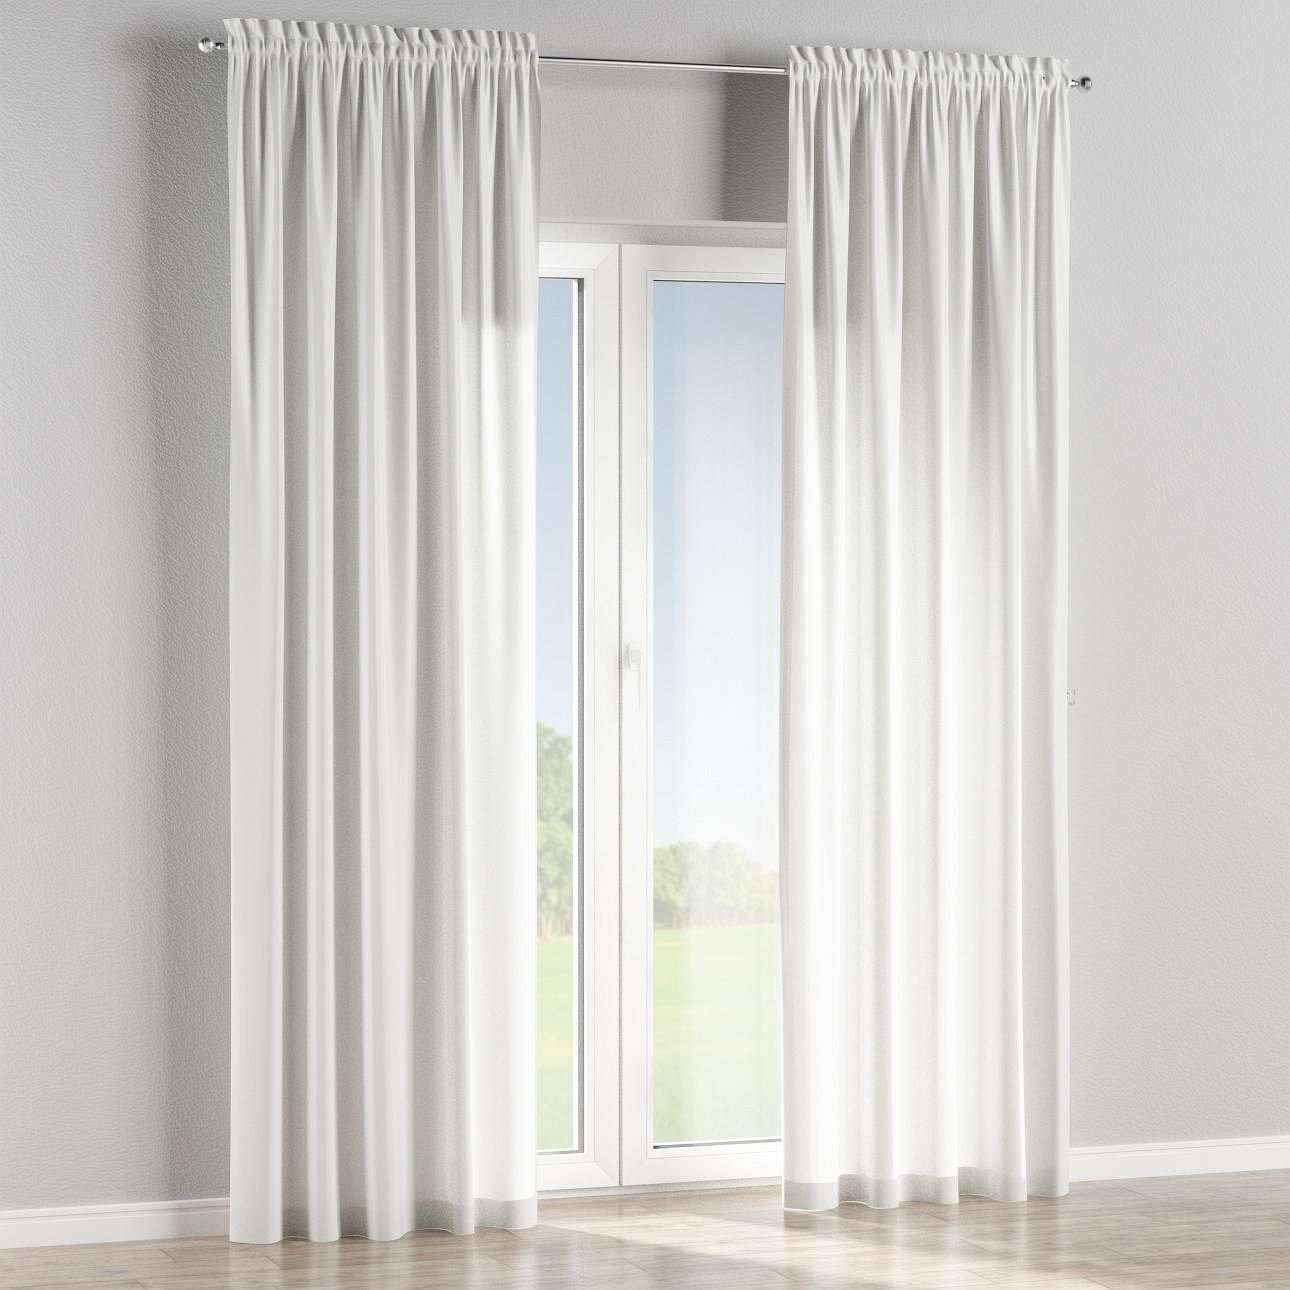 Slot and frill lined curtains in collection New Art, fabric: 140-26